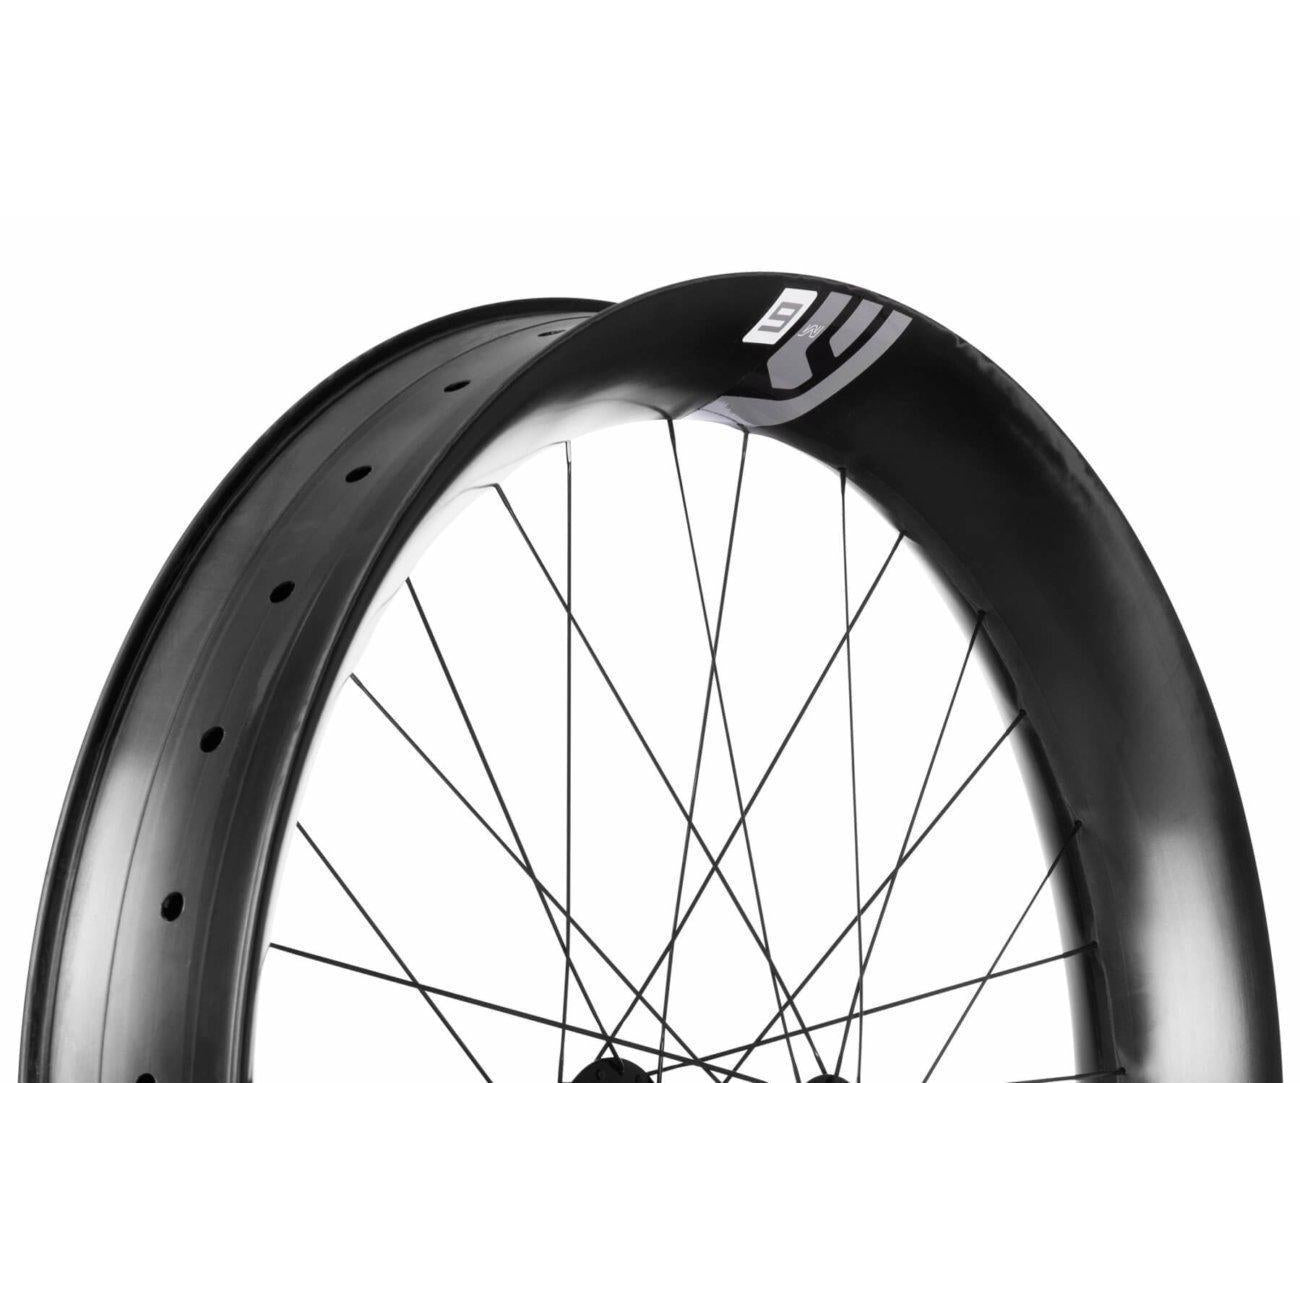 ENVE-ENVE M685 Fat Bike Rim-EN256852733-saddleback-elite-performance-cycling